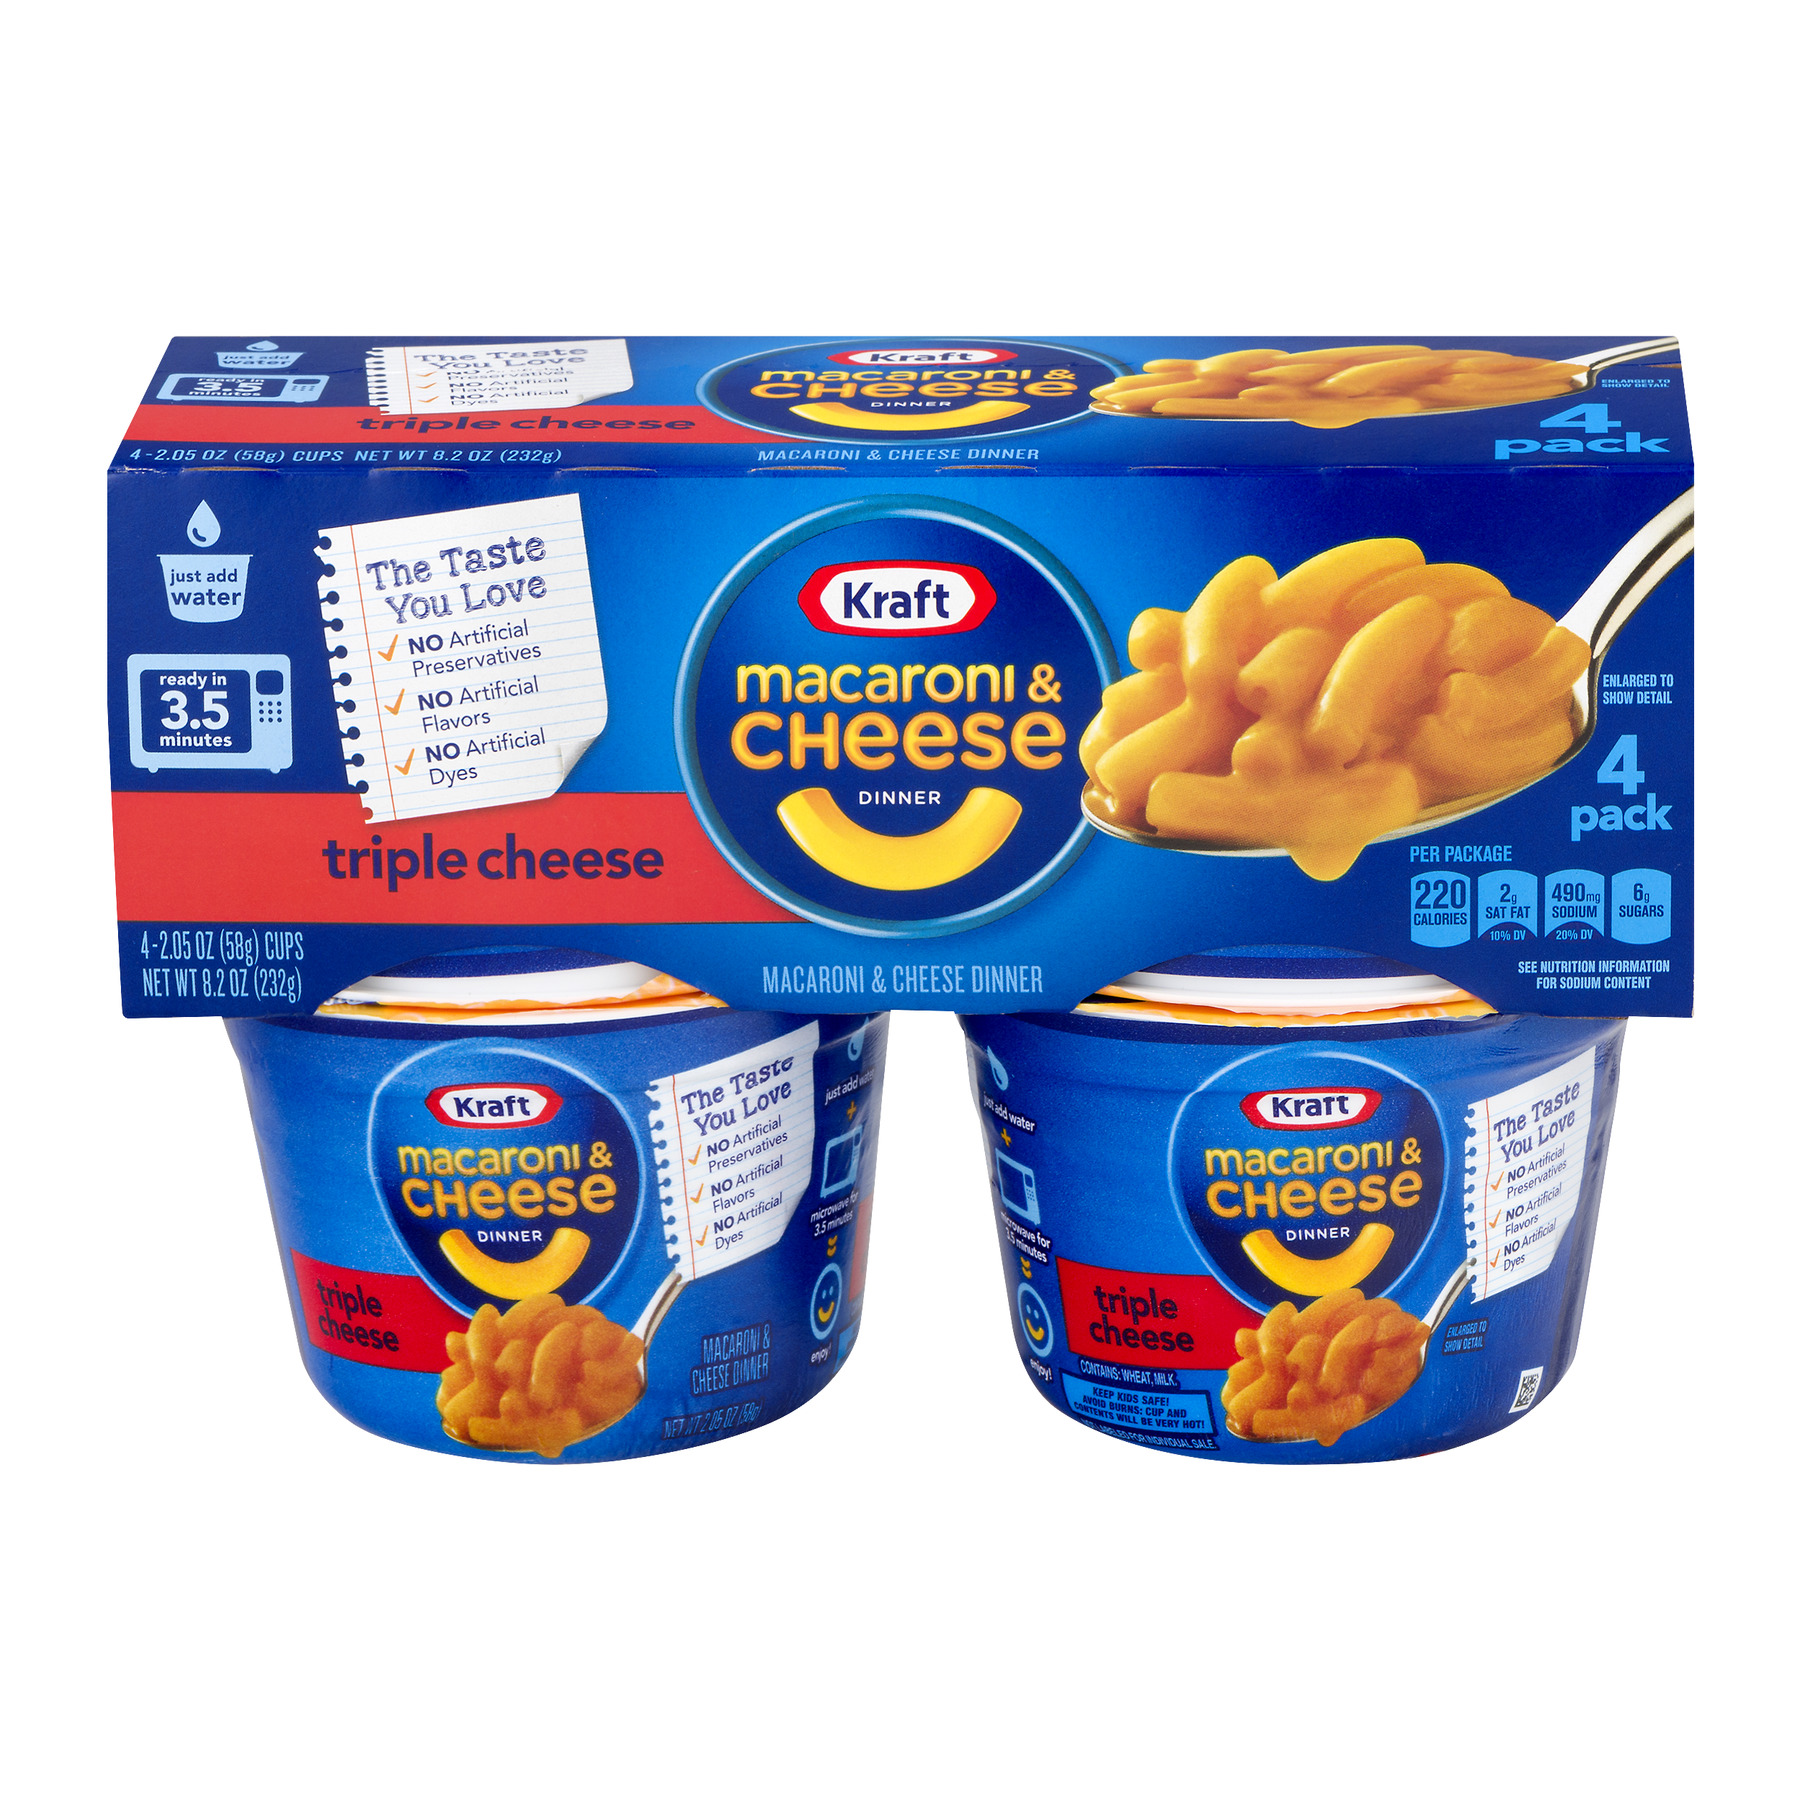 Kraft Macaroni & Cheese Dinner Triple Cheese - 4 PK, 2.05 OZ